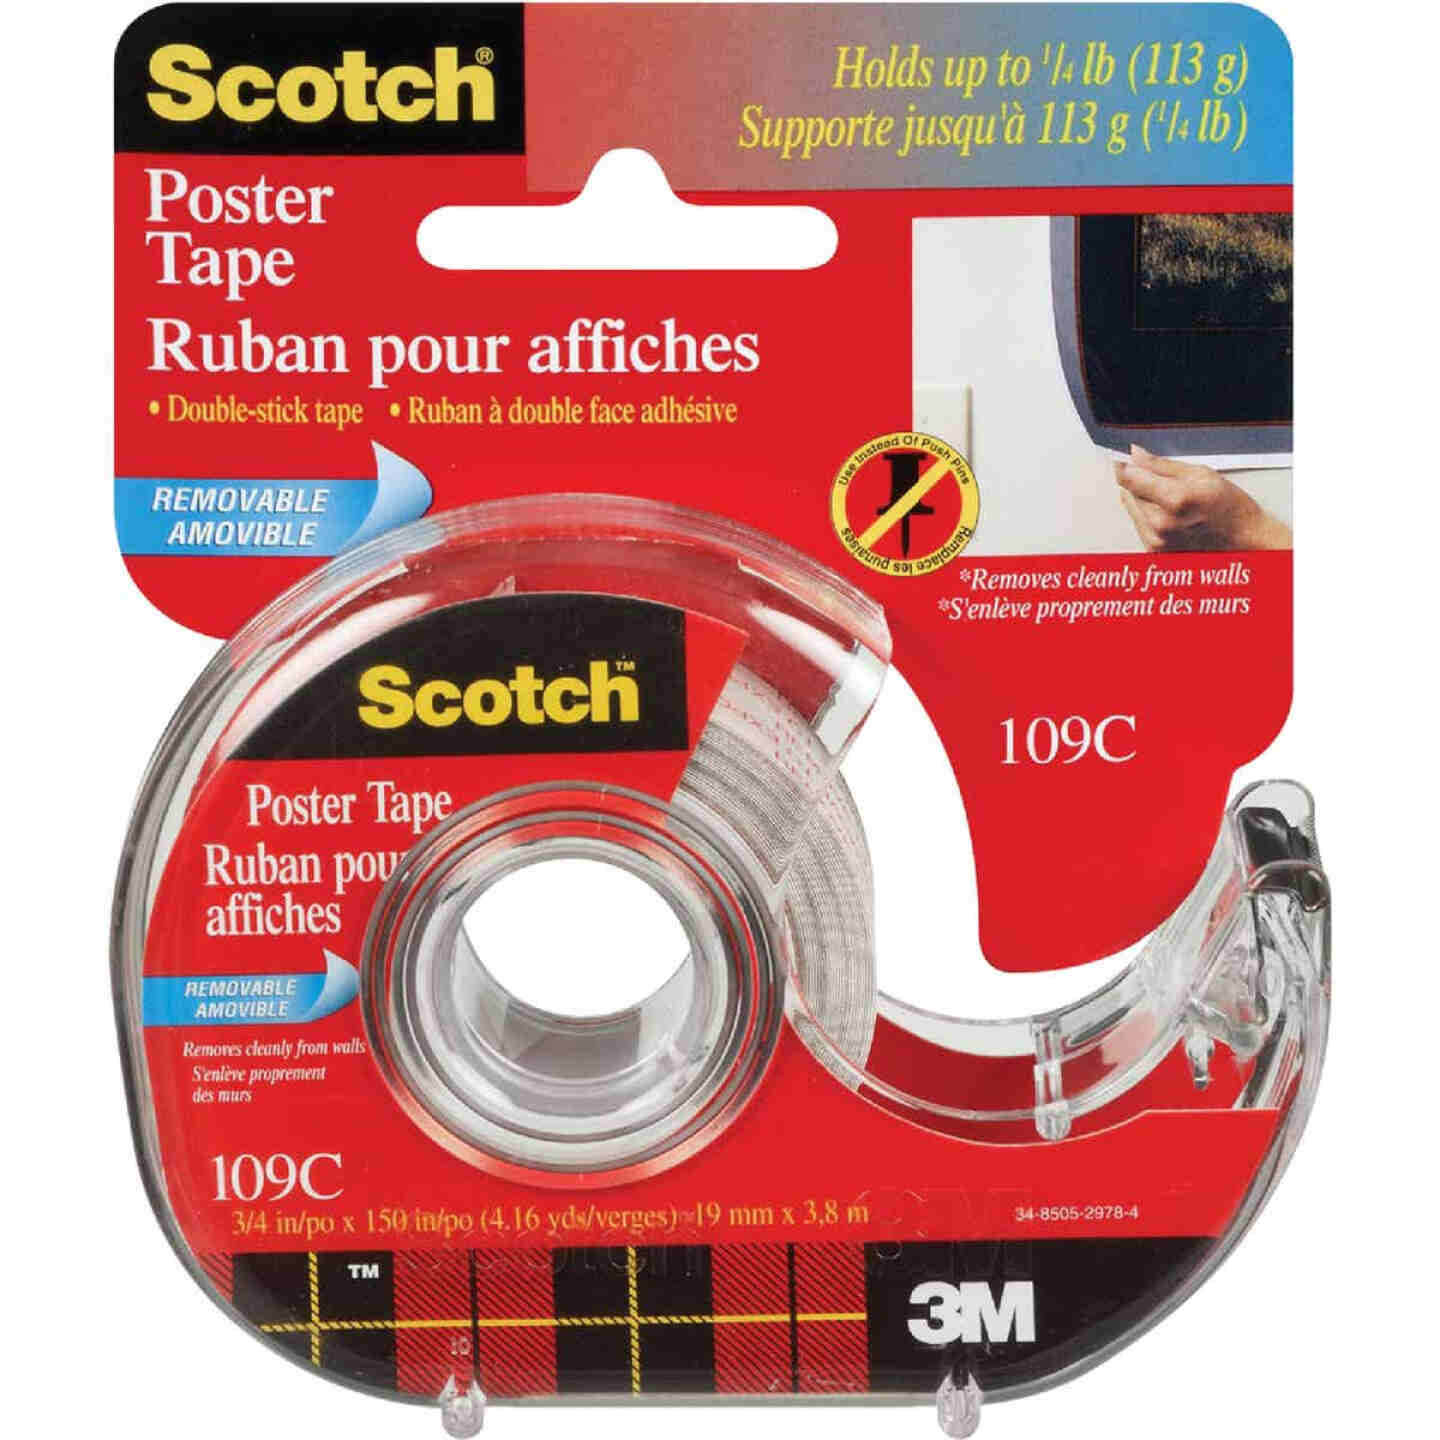 3M Scotch 3/4 In. W. x 150 In. L. Clear Removable Double-Sided Poster Mounting Tape Image 1